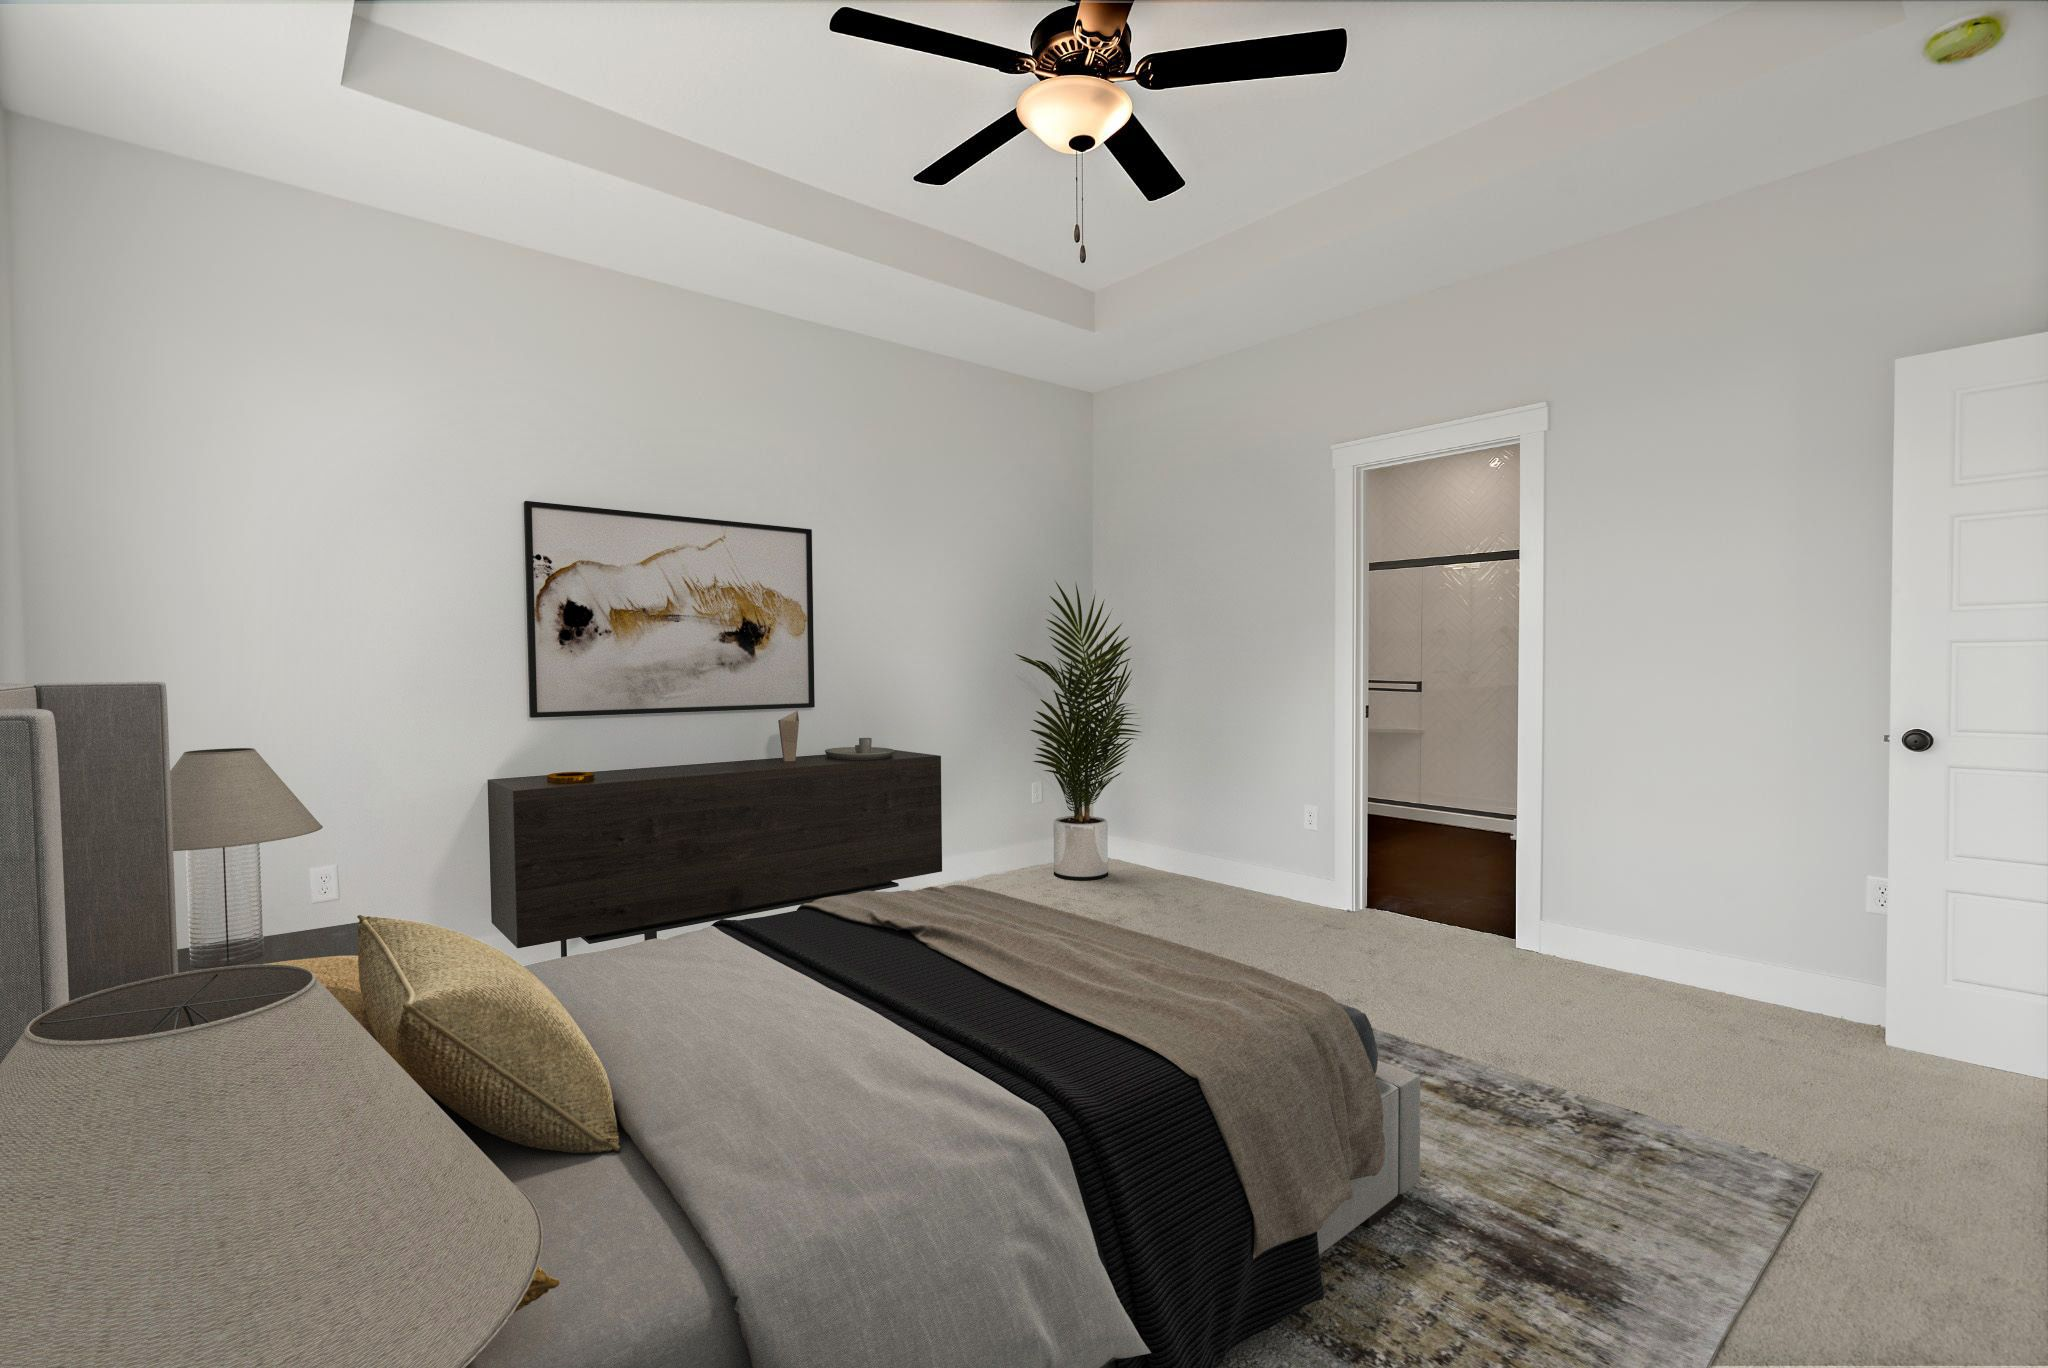 Bedroom featured in the Bradford - IA By Summit Homes in Des Moines, IA